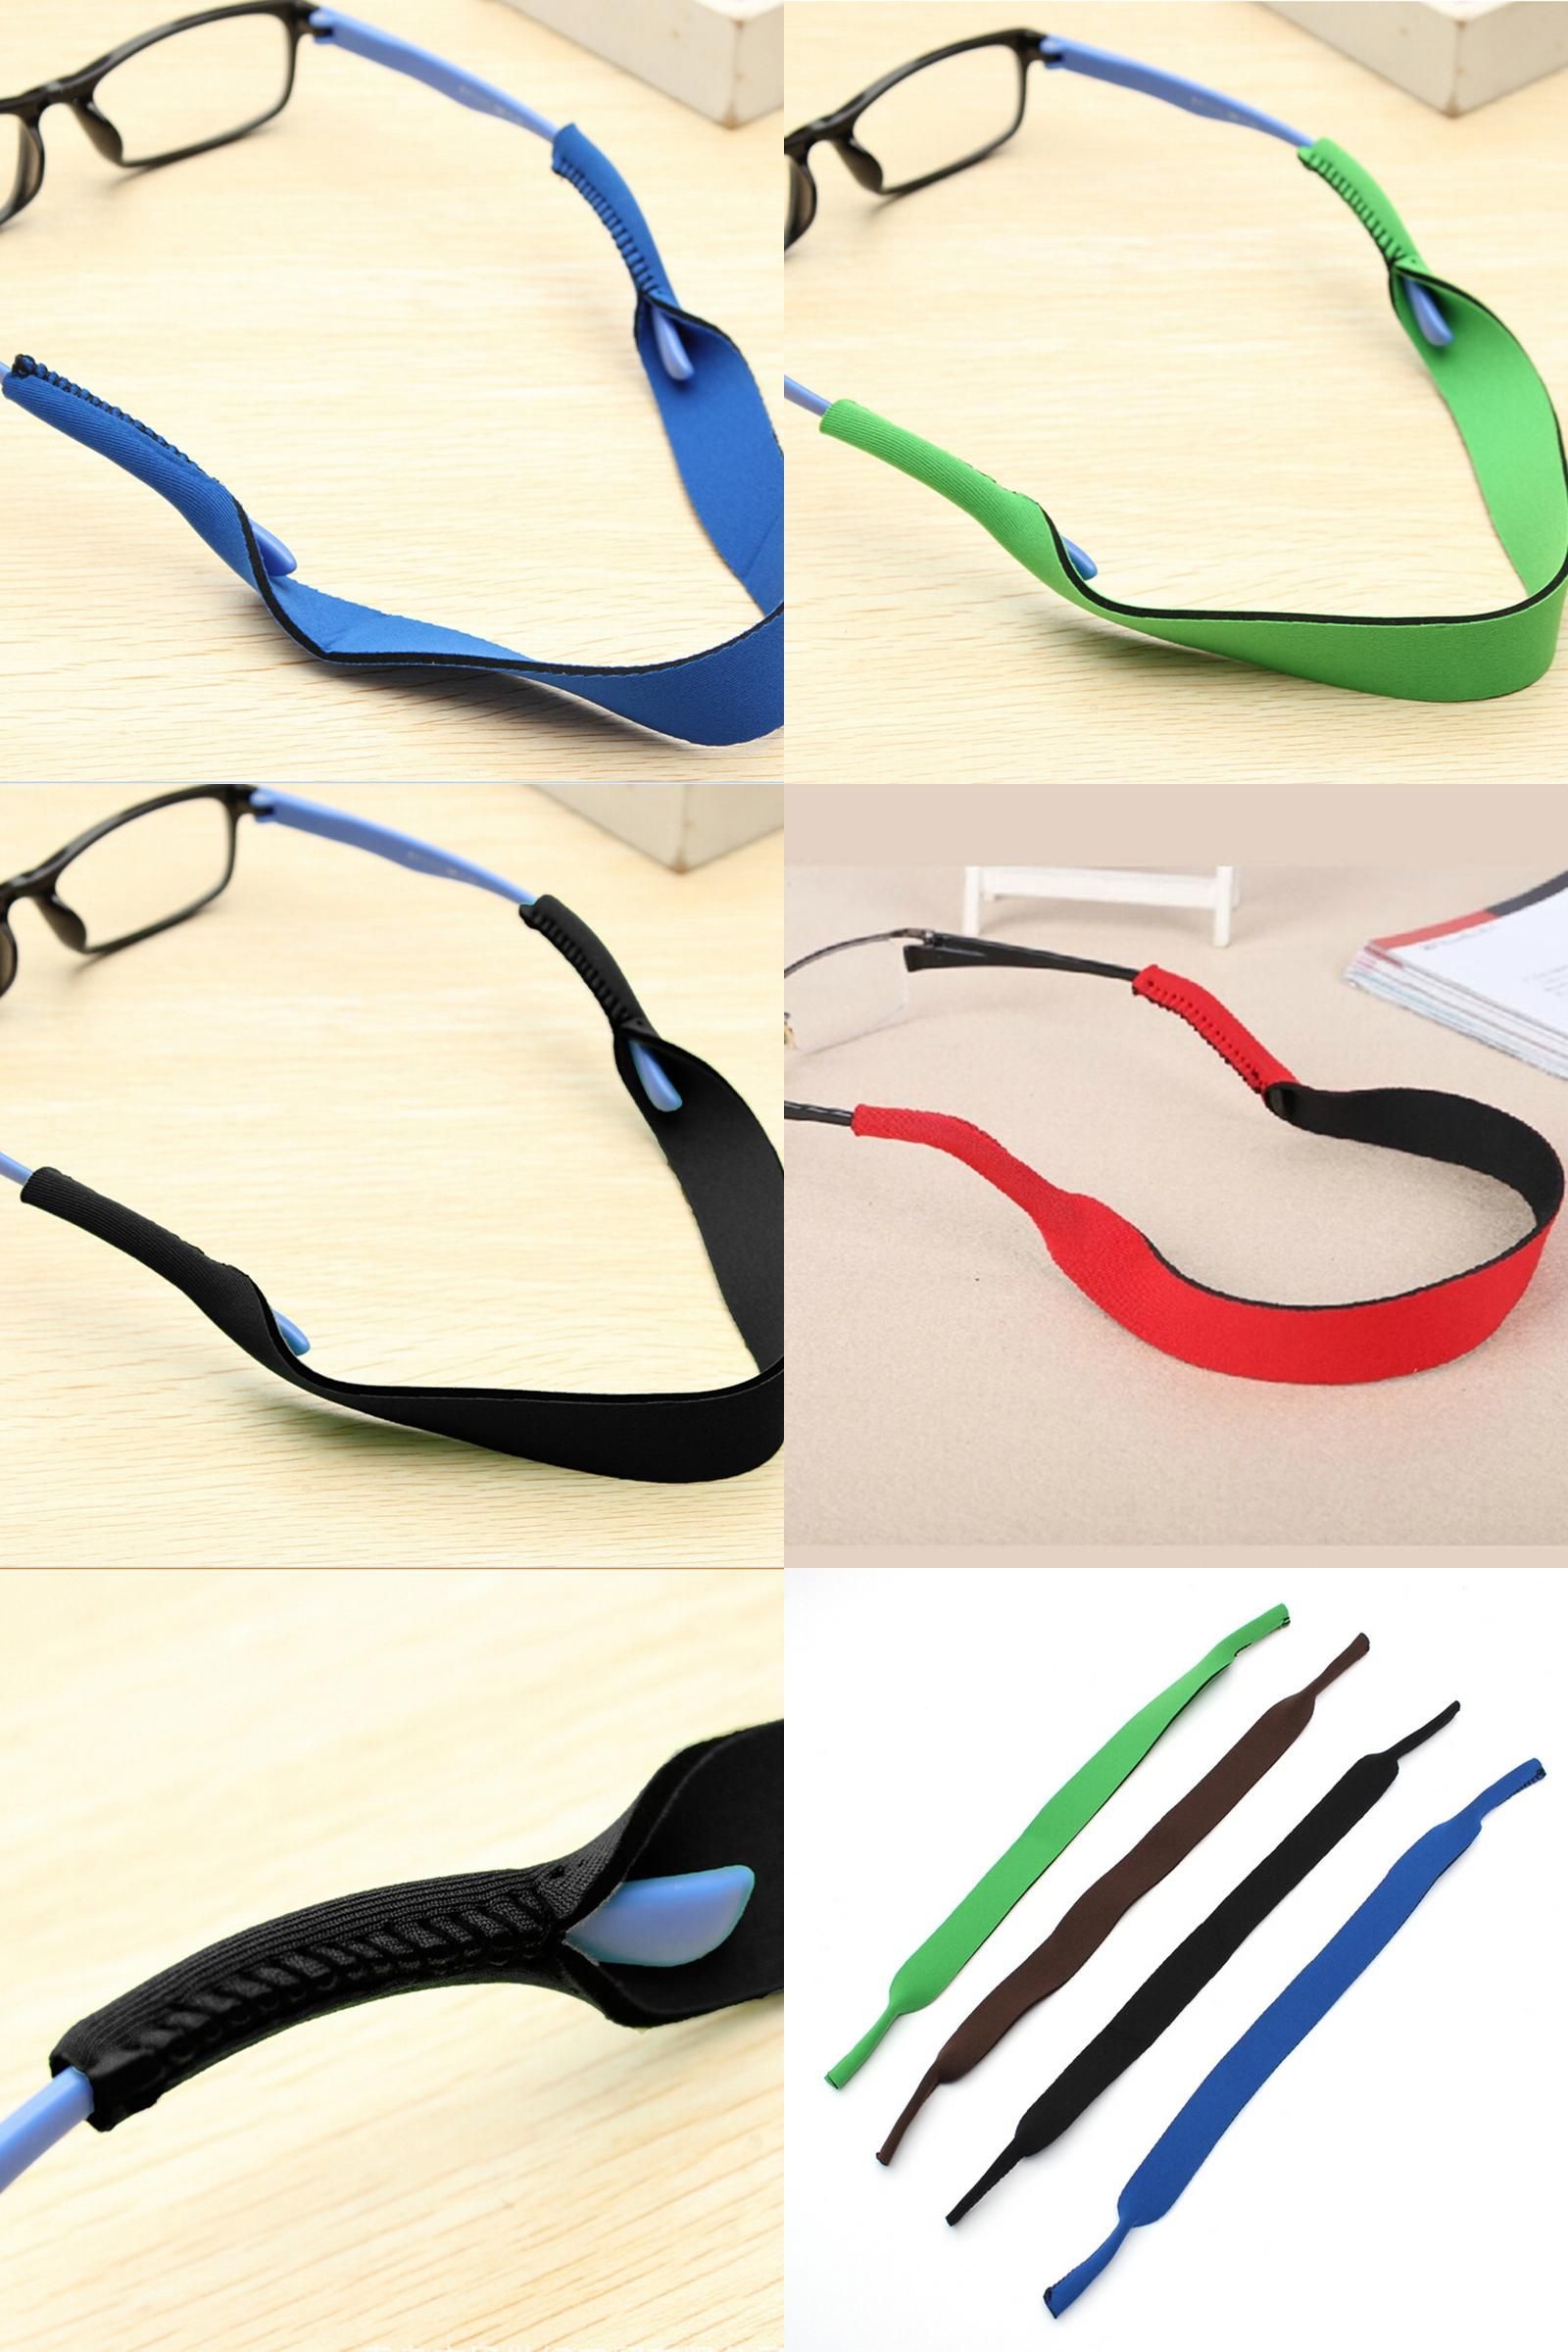 21ab14c361 [Visit to Buy] Spectacle Glasses Anti Slip Strap Stretchy Neck Cord 40.8cm  Outdoor Sports Eyeglasses String Sunglass Rope Band Holder #Advertisement